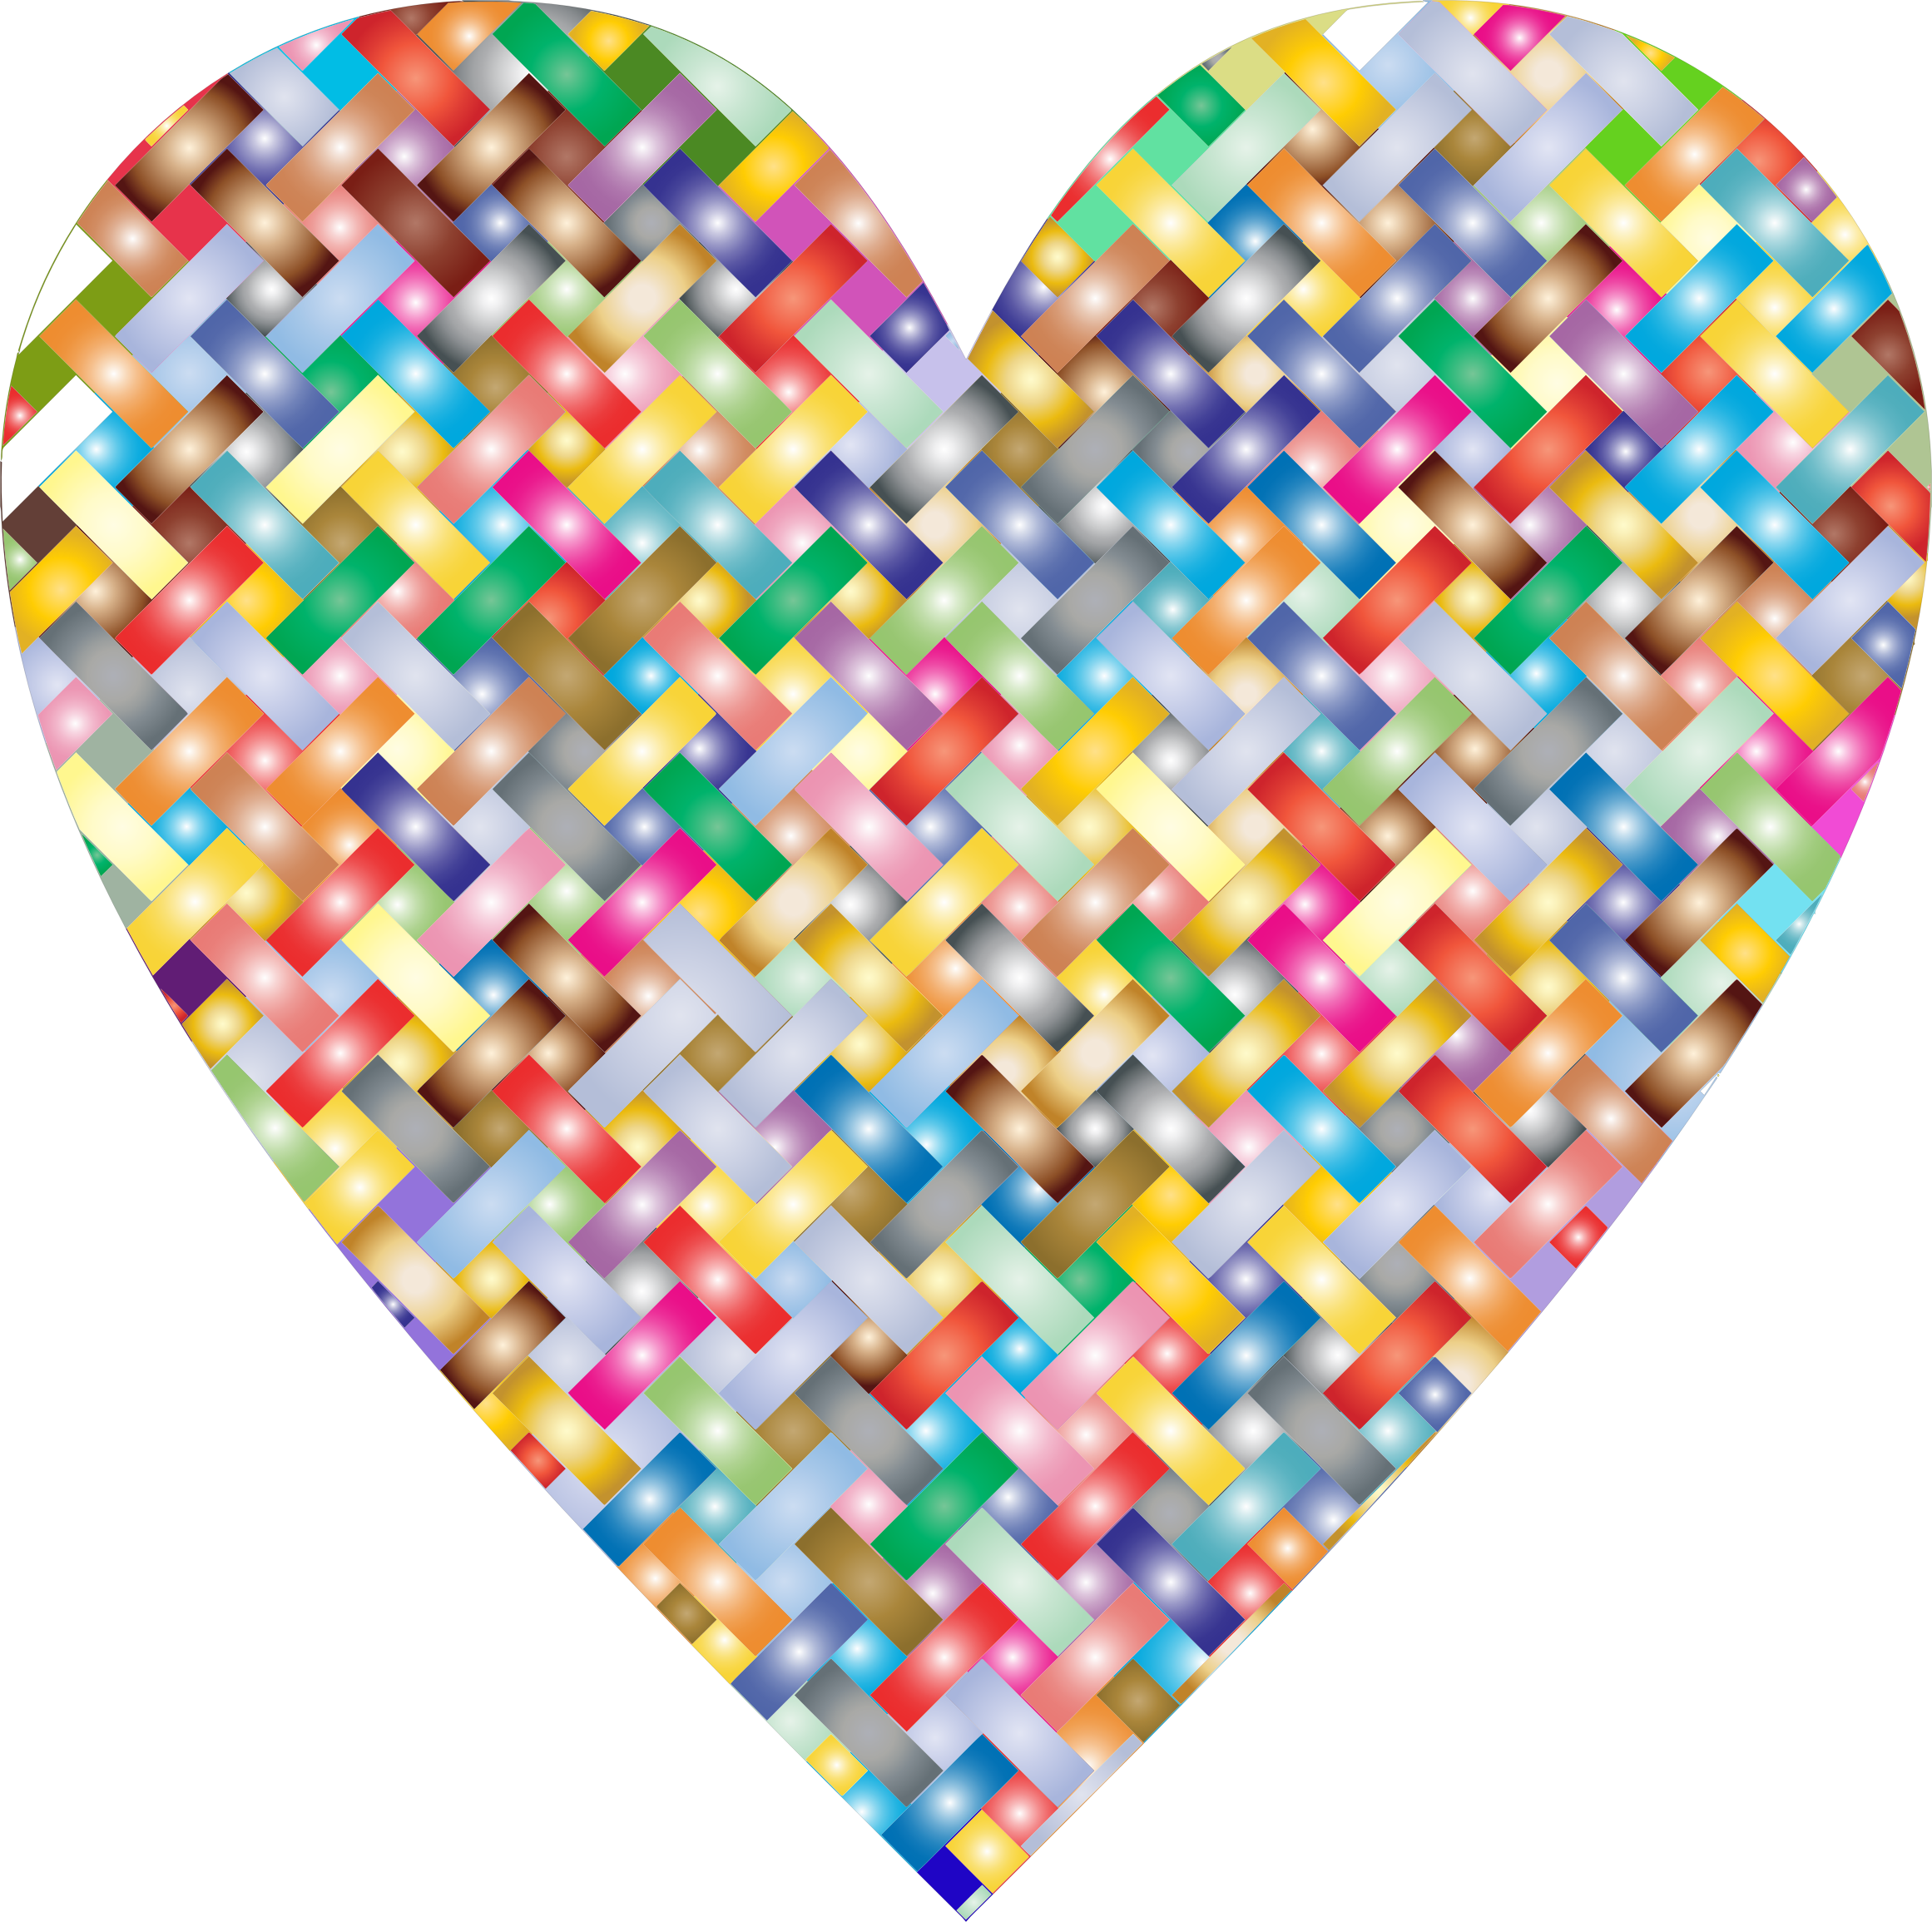 Colorful Heart Lattice Weave 3 by GDJ